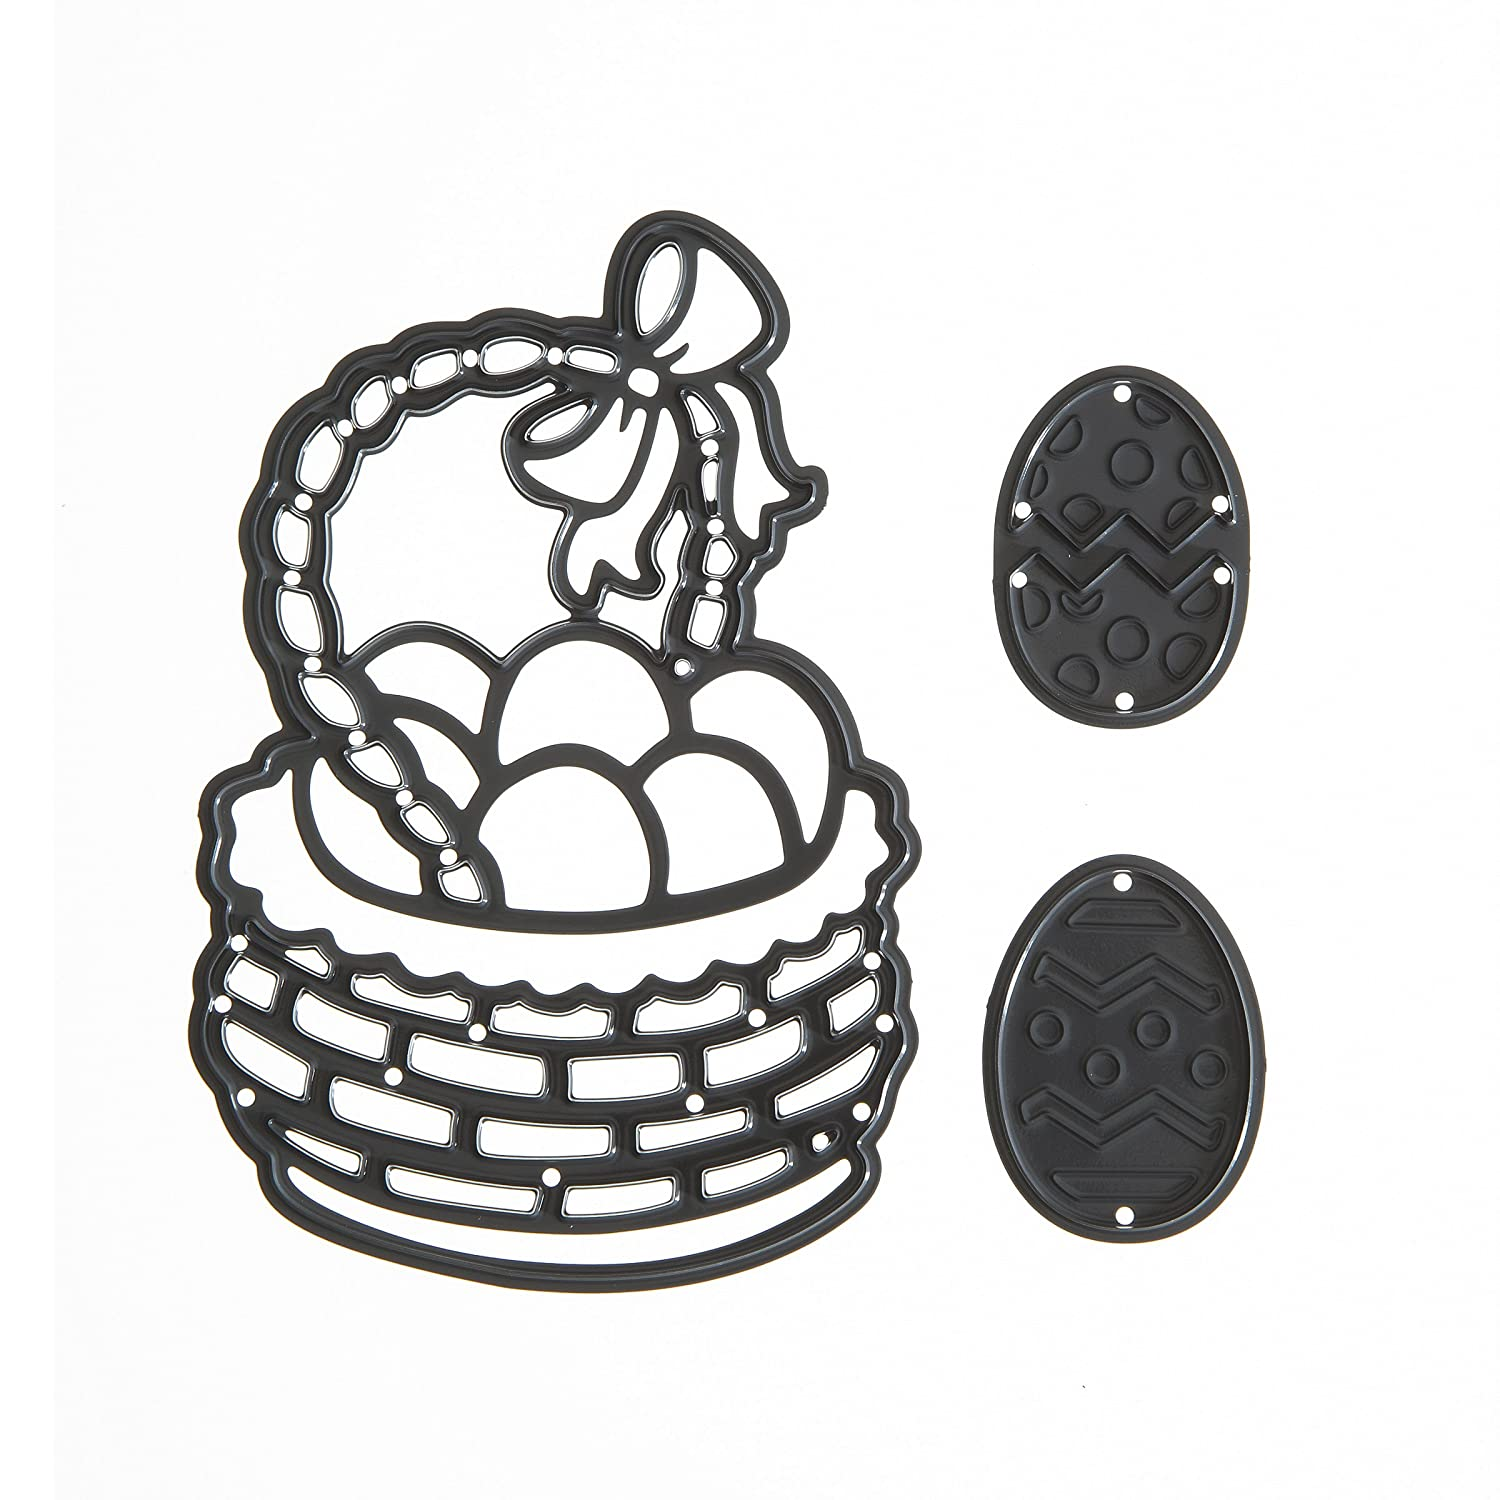 Darice Build-A-Design Die Cut Easter Basket with Eggs, 3 Piece 30001025